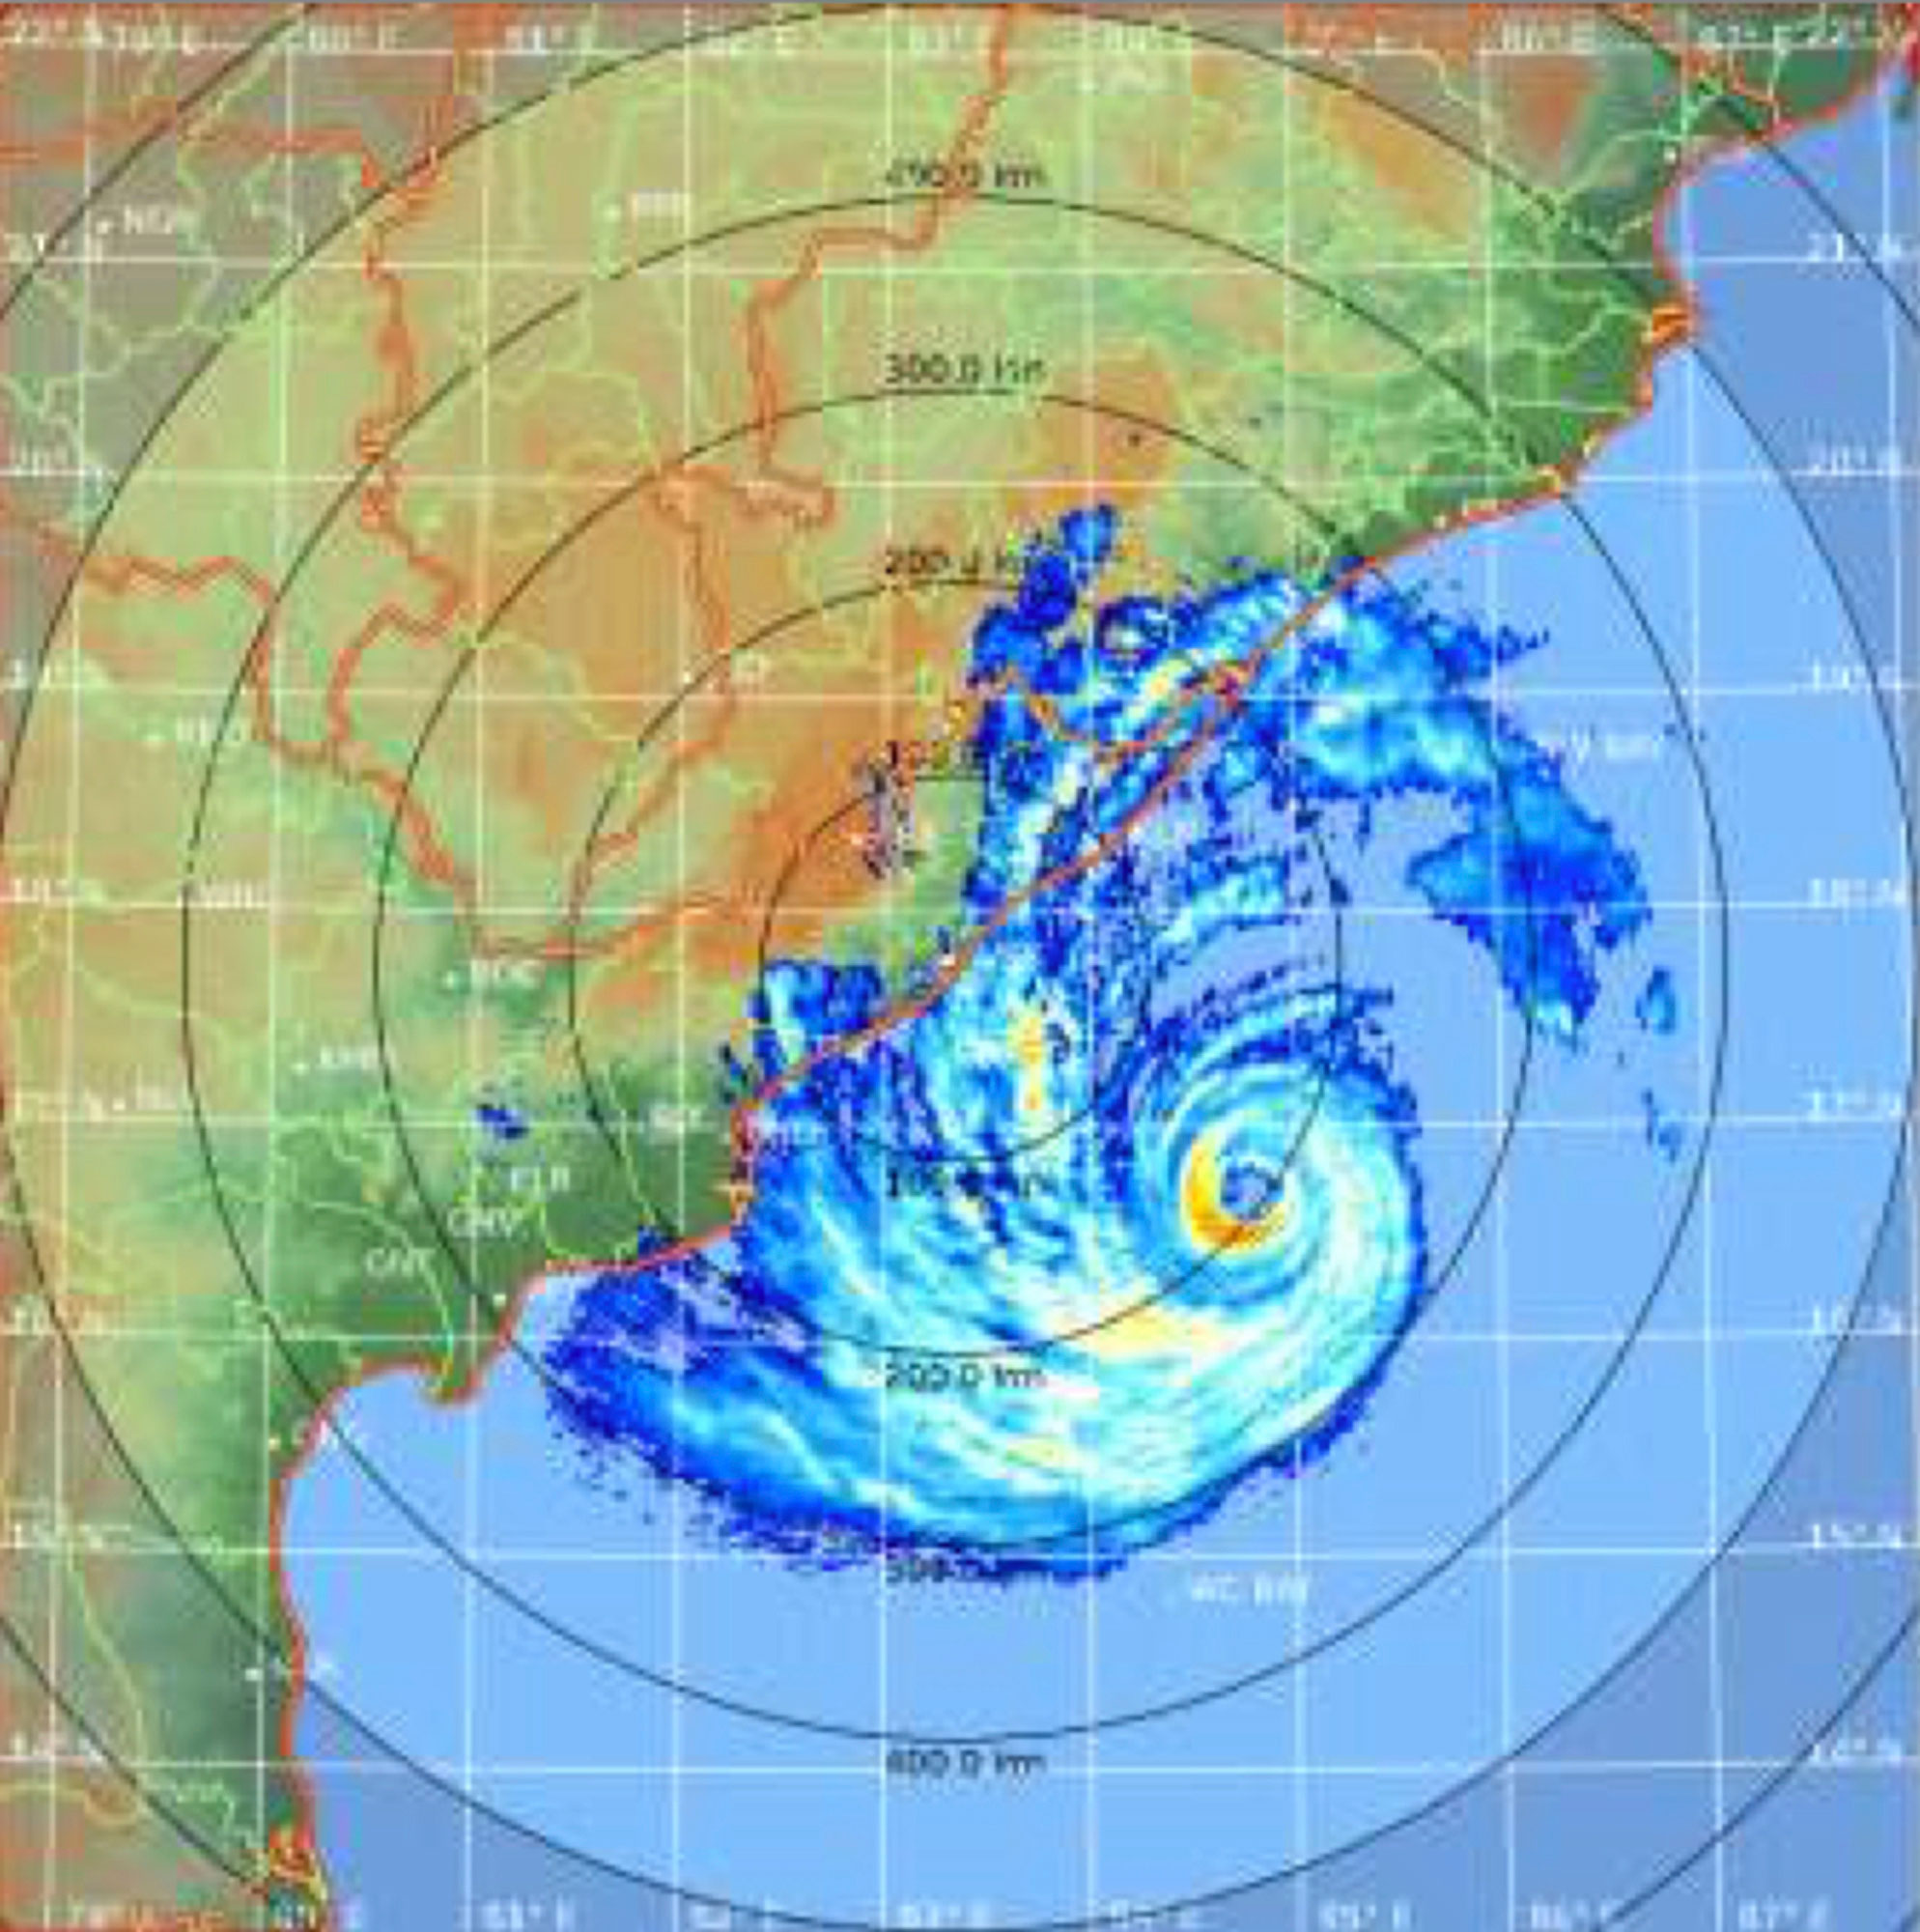 In this satellite image acquired from the India Meteorological Department, shows Cyclone Fani over the Bay of Bengal on May 2, 2019.